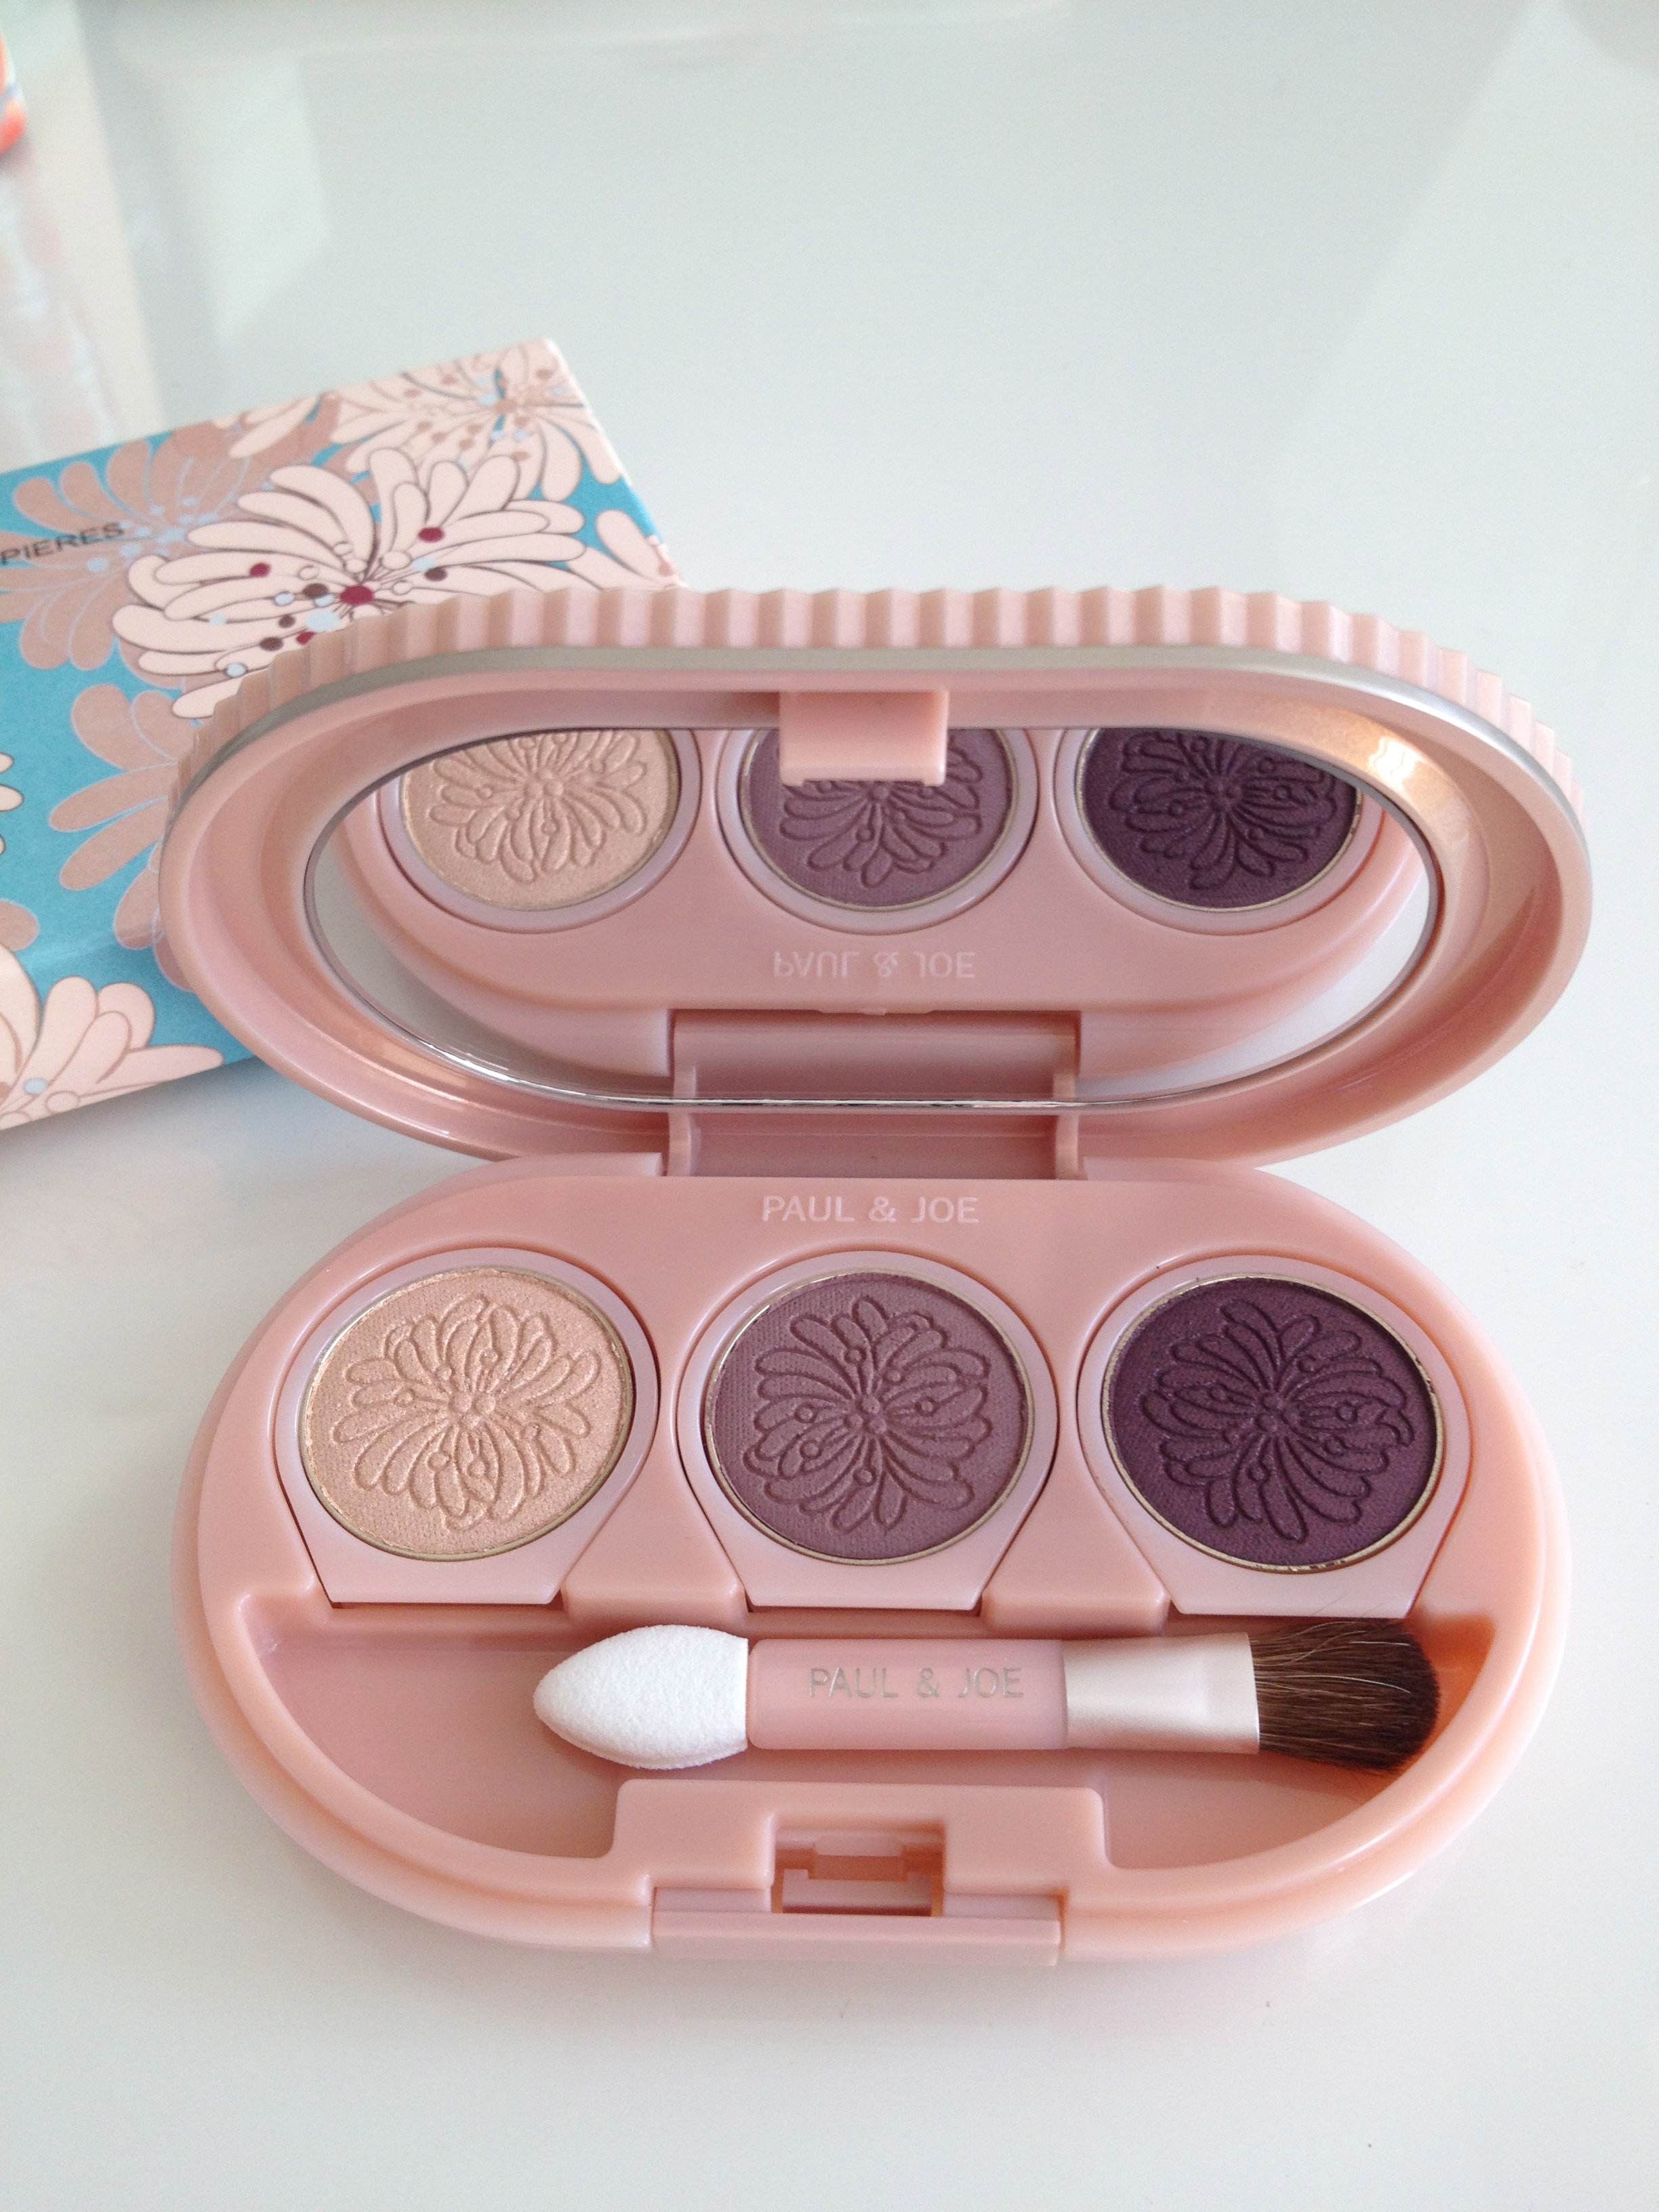 Customisable eye shadow palette with colours 15, 31 and 11